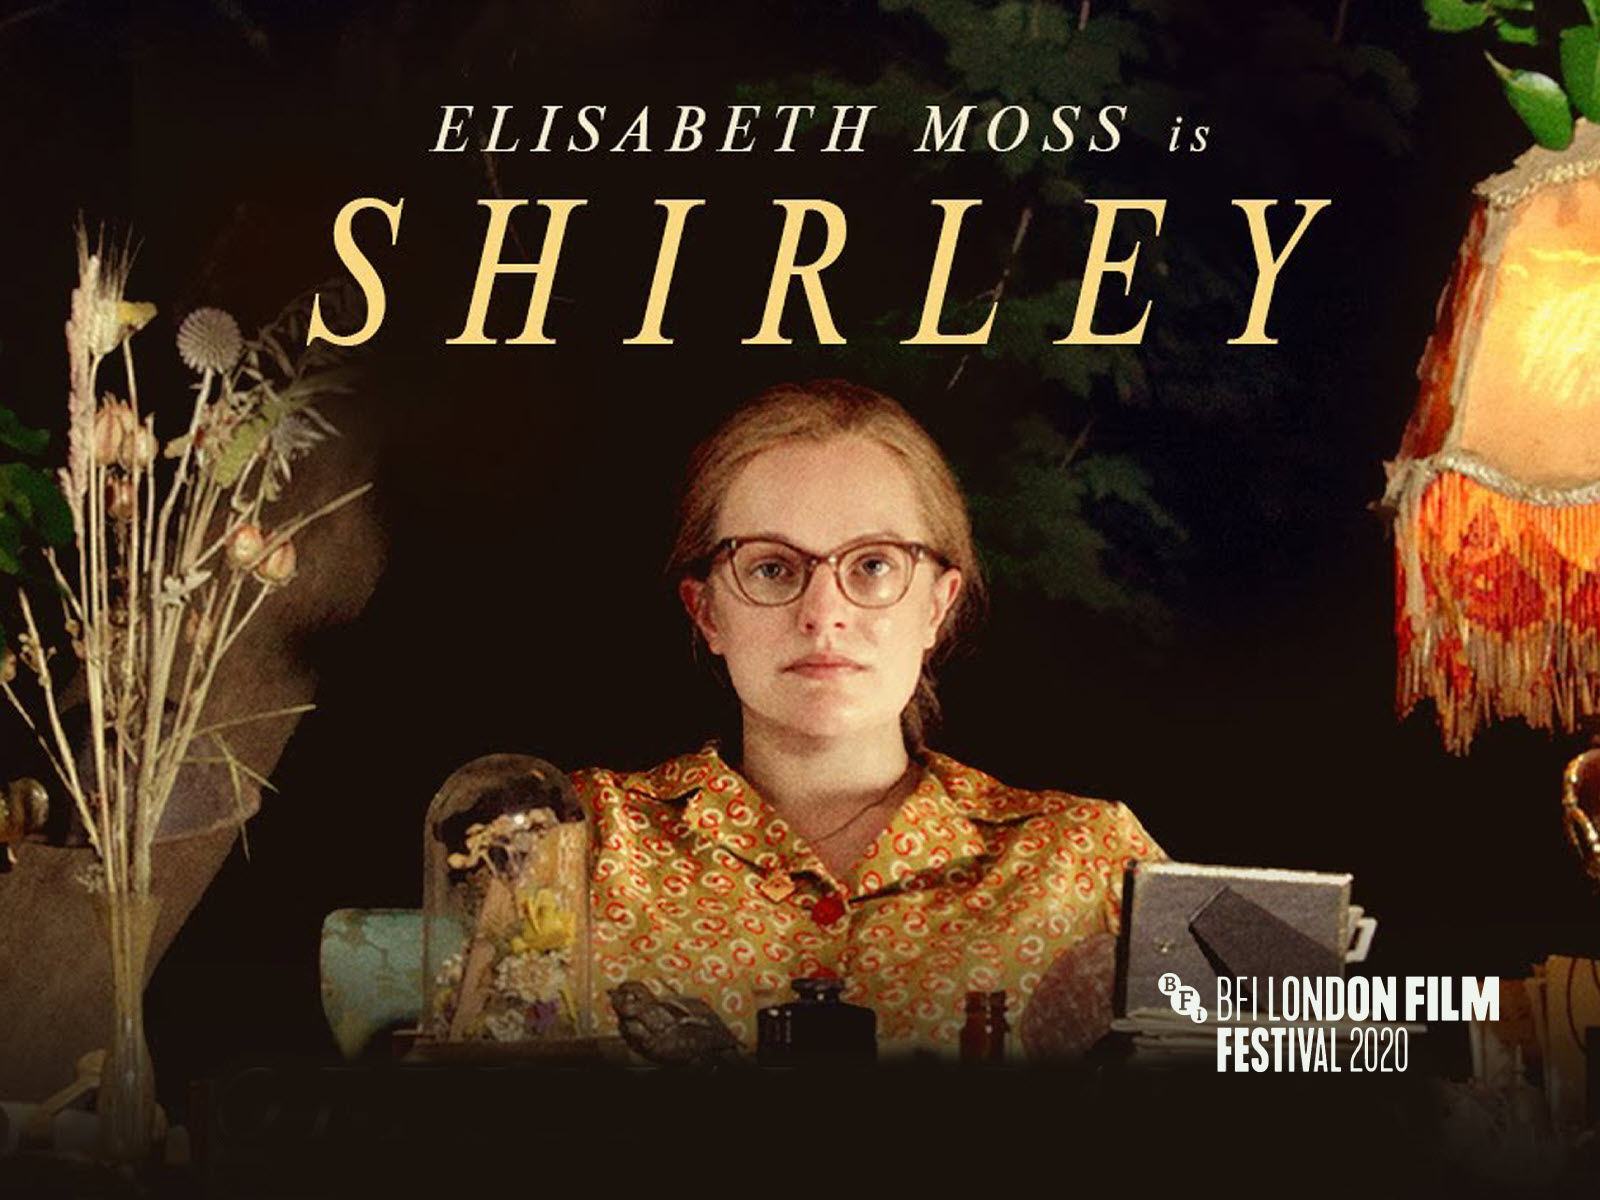 Elisabeth Moss gives a tour-de-force performance as Shirley Jackson, one of the greatest horror writers of the 20th Century, in this unconventional biopic from the brilliant mind of director Josephine Decker (Madeline's Madeline) and executive producer Martin Scorsese...